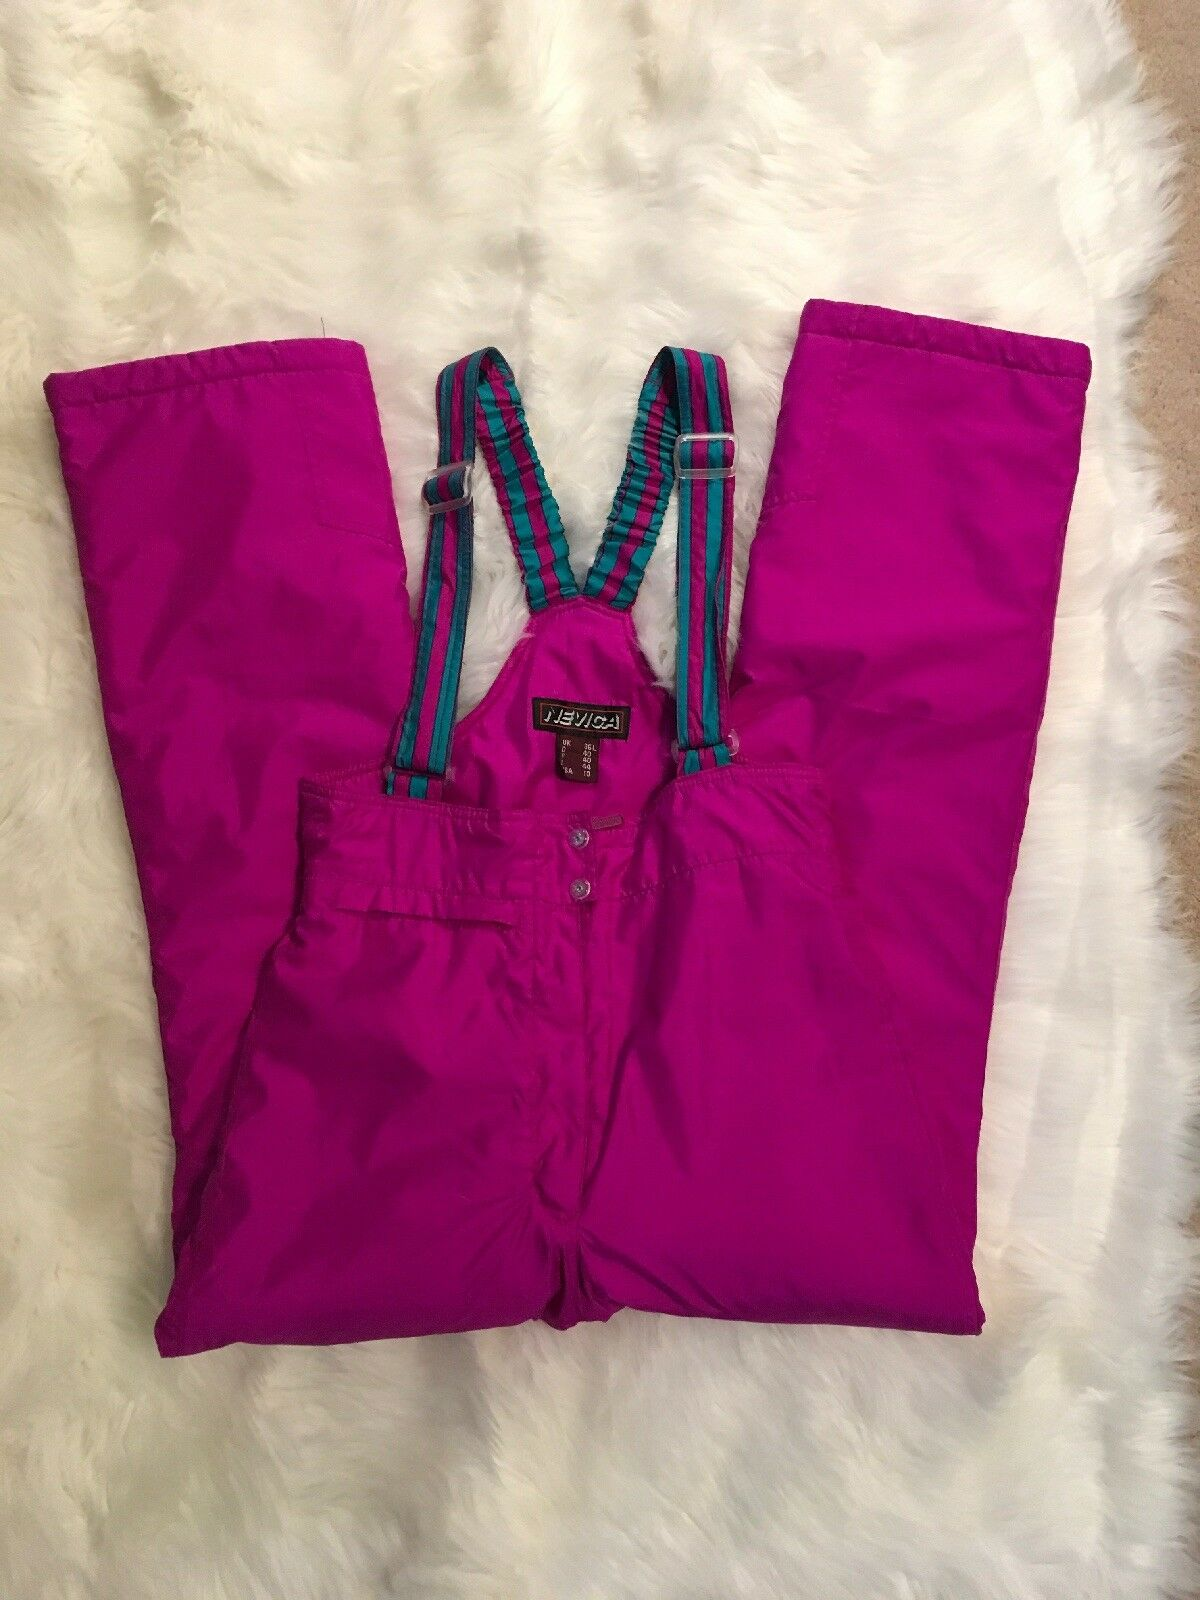 Nevica Ski Pants Size 10 Excellent Condition